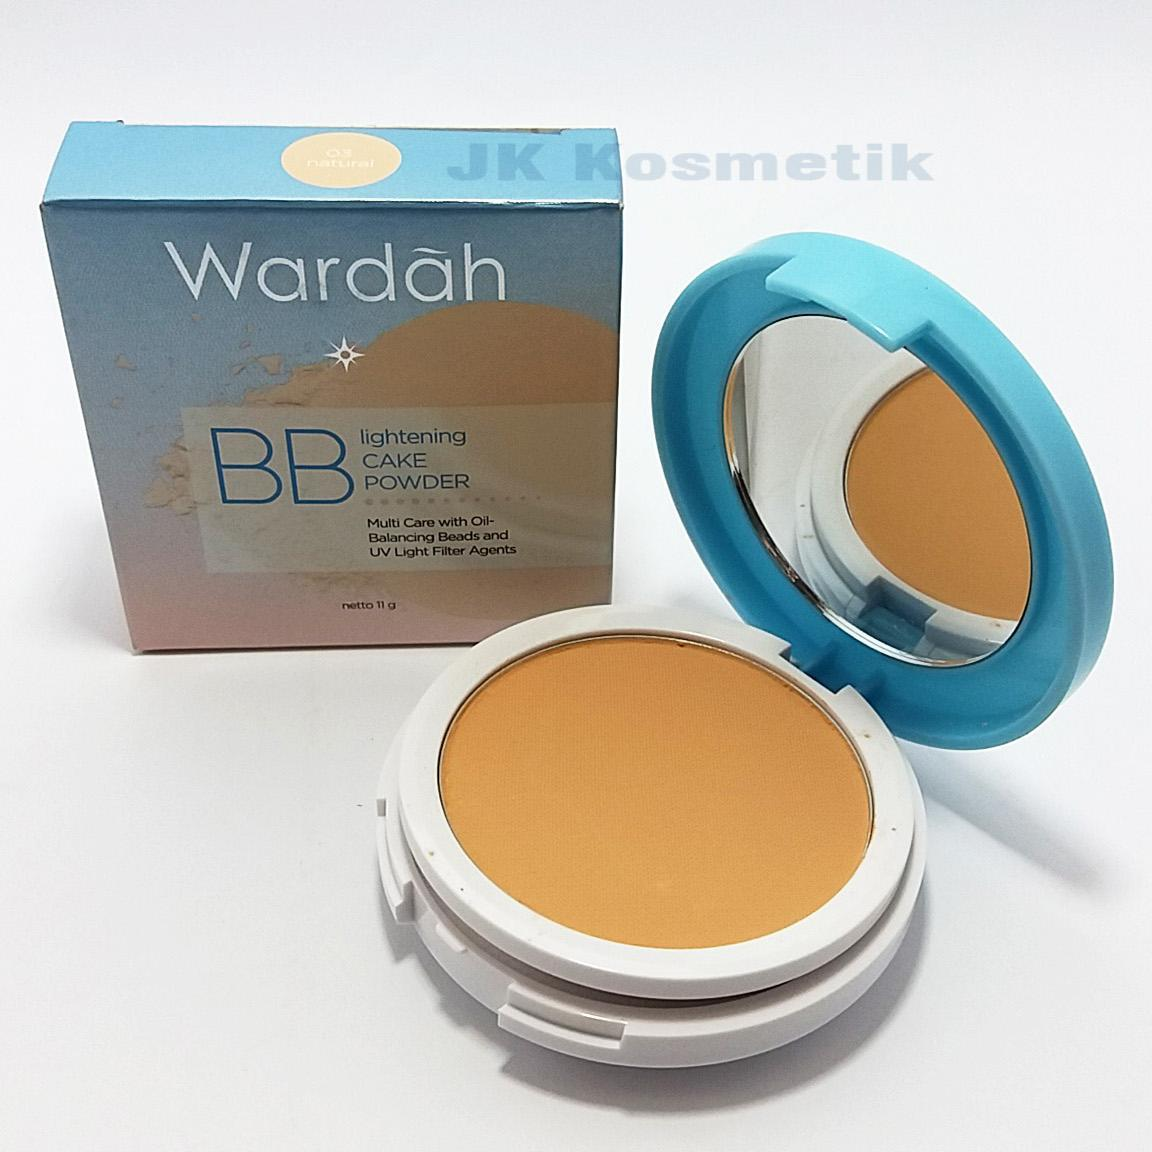 Cek Harga Baru Wardah Lightening Bb Cake Powder 01 Light Terkini Refill Two Way Feel 03 Natural